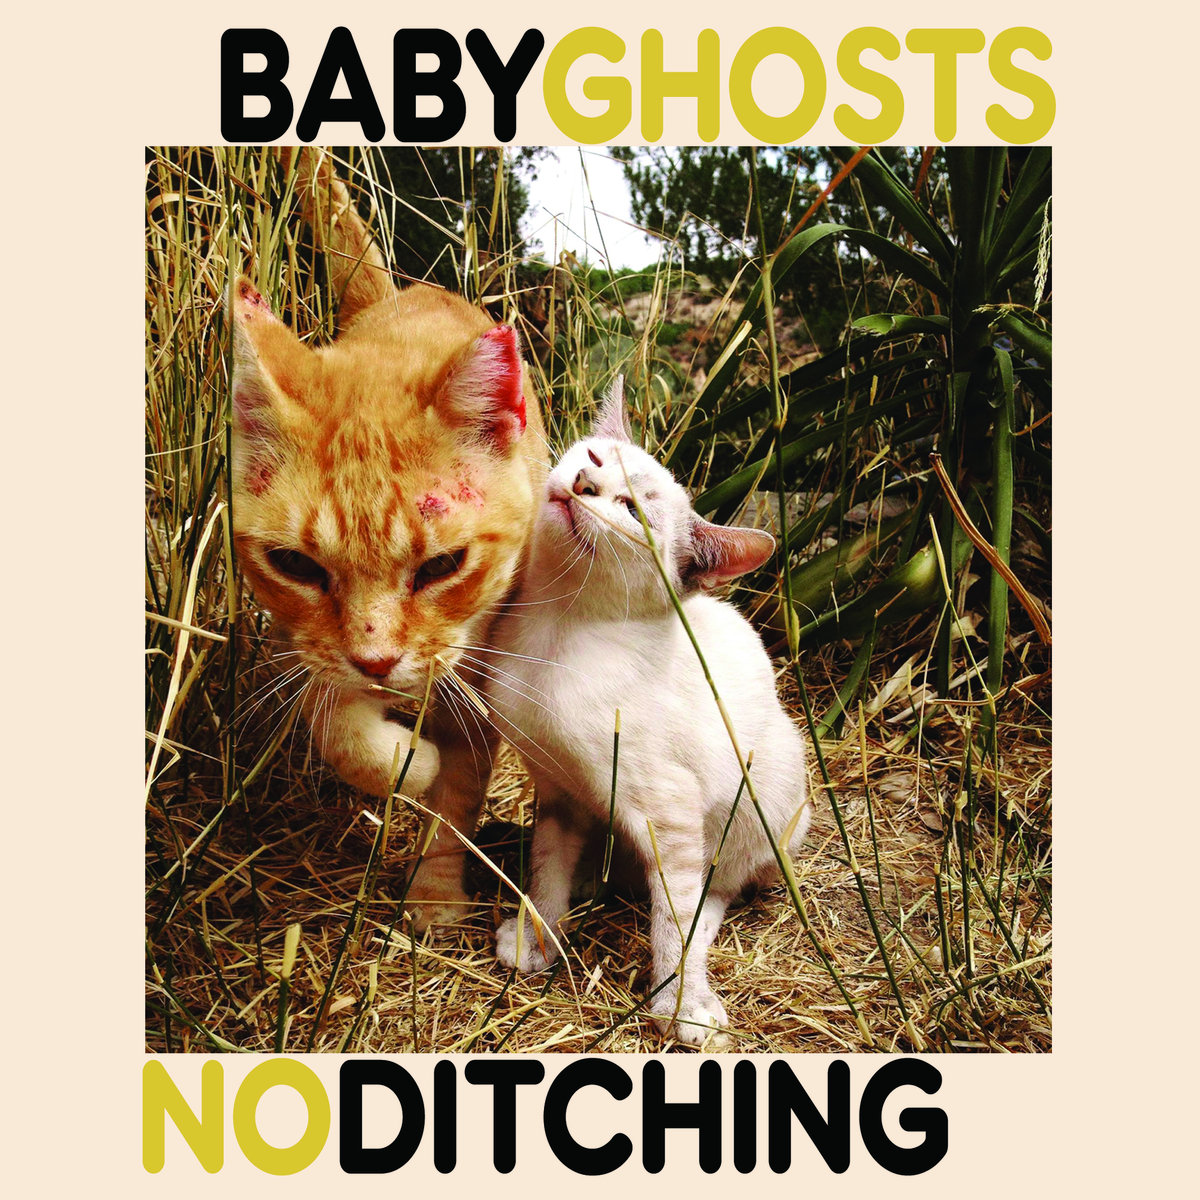 Baby Ghosts / No Ditching - Split 7